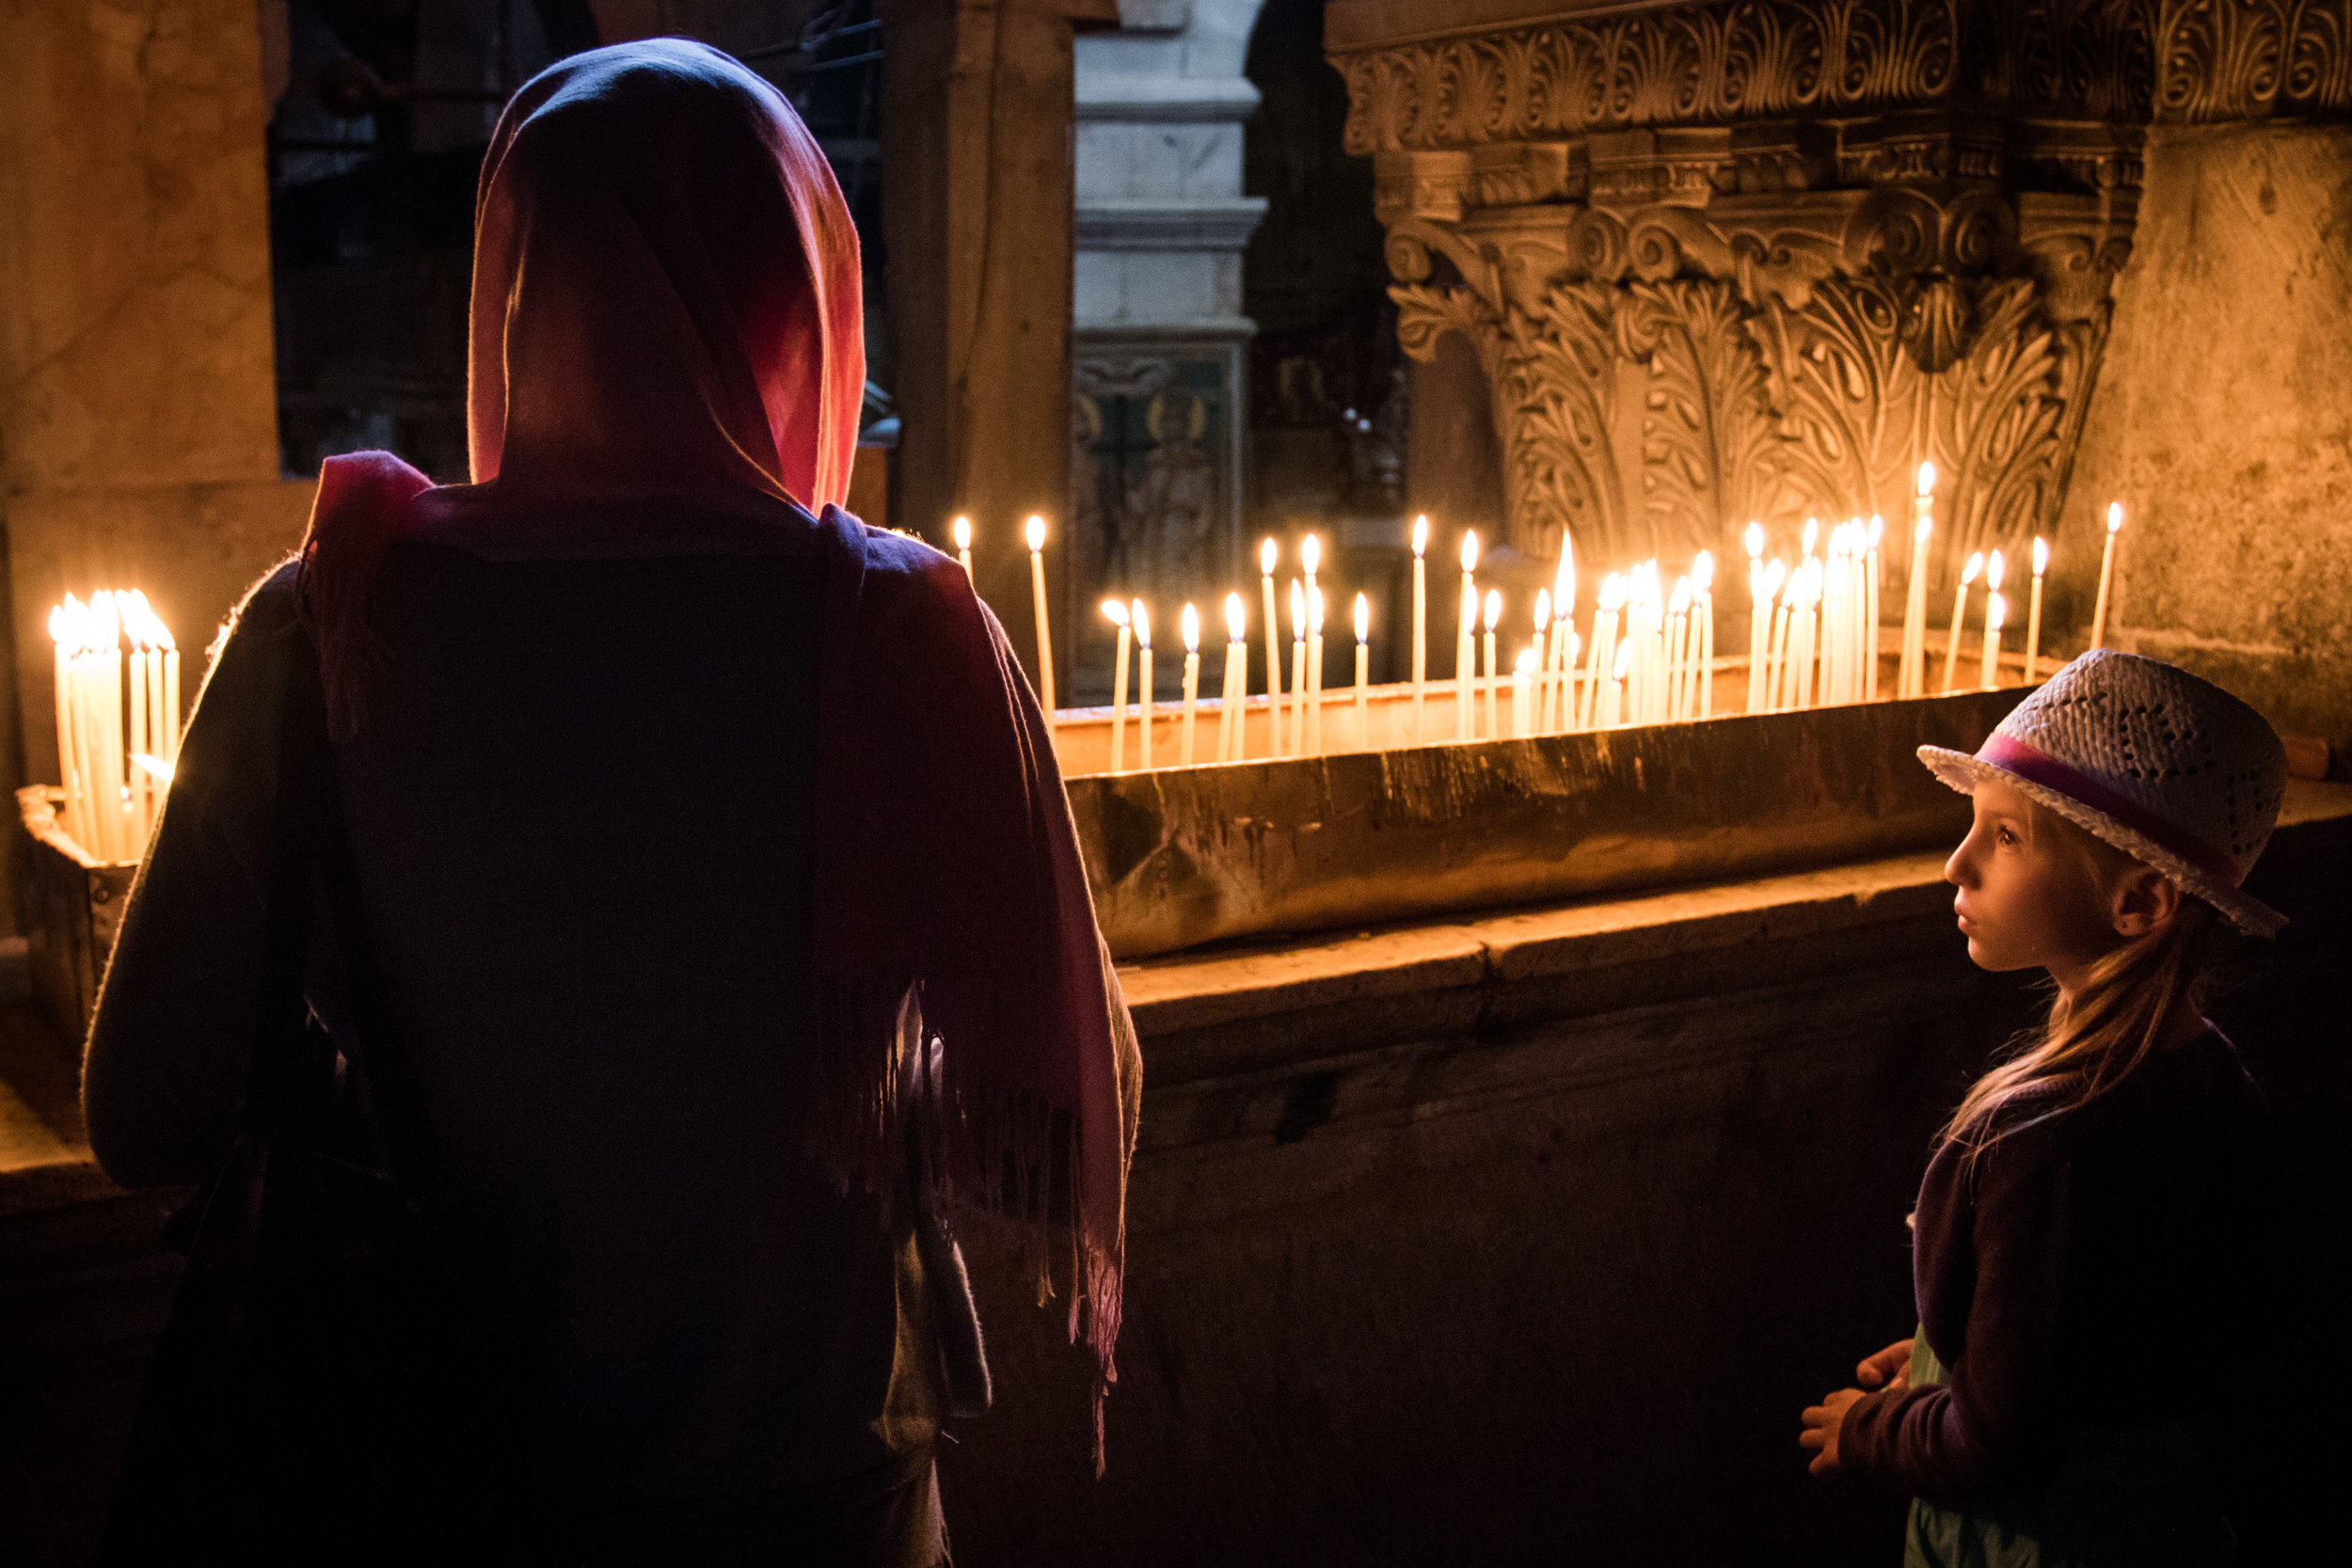 A young girl looks at a woman in a pink headdress near the candles at Calvary, the site where Jesus Christ was said to have been crucified inside the Church of the Holy Sepulchre in the Old City of Jerusalem, May 29, 2016.